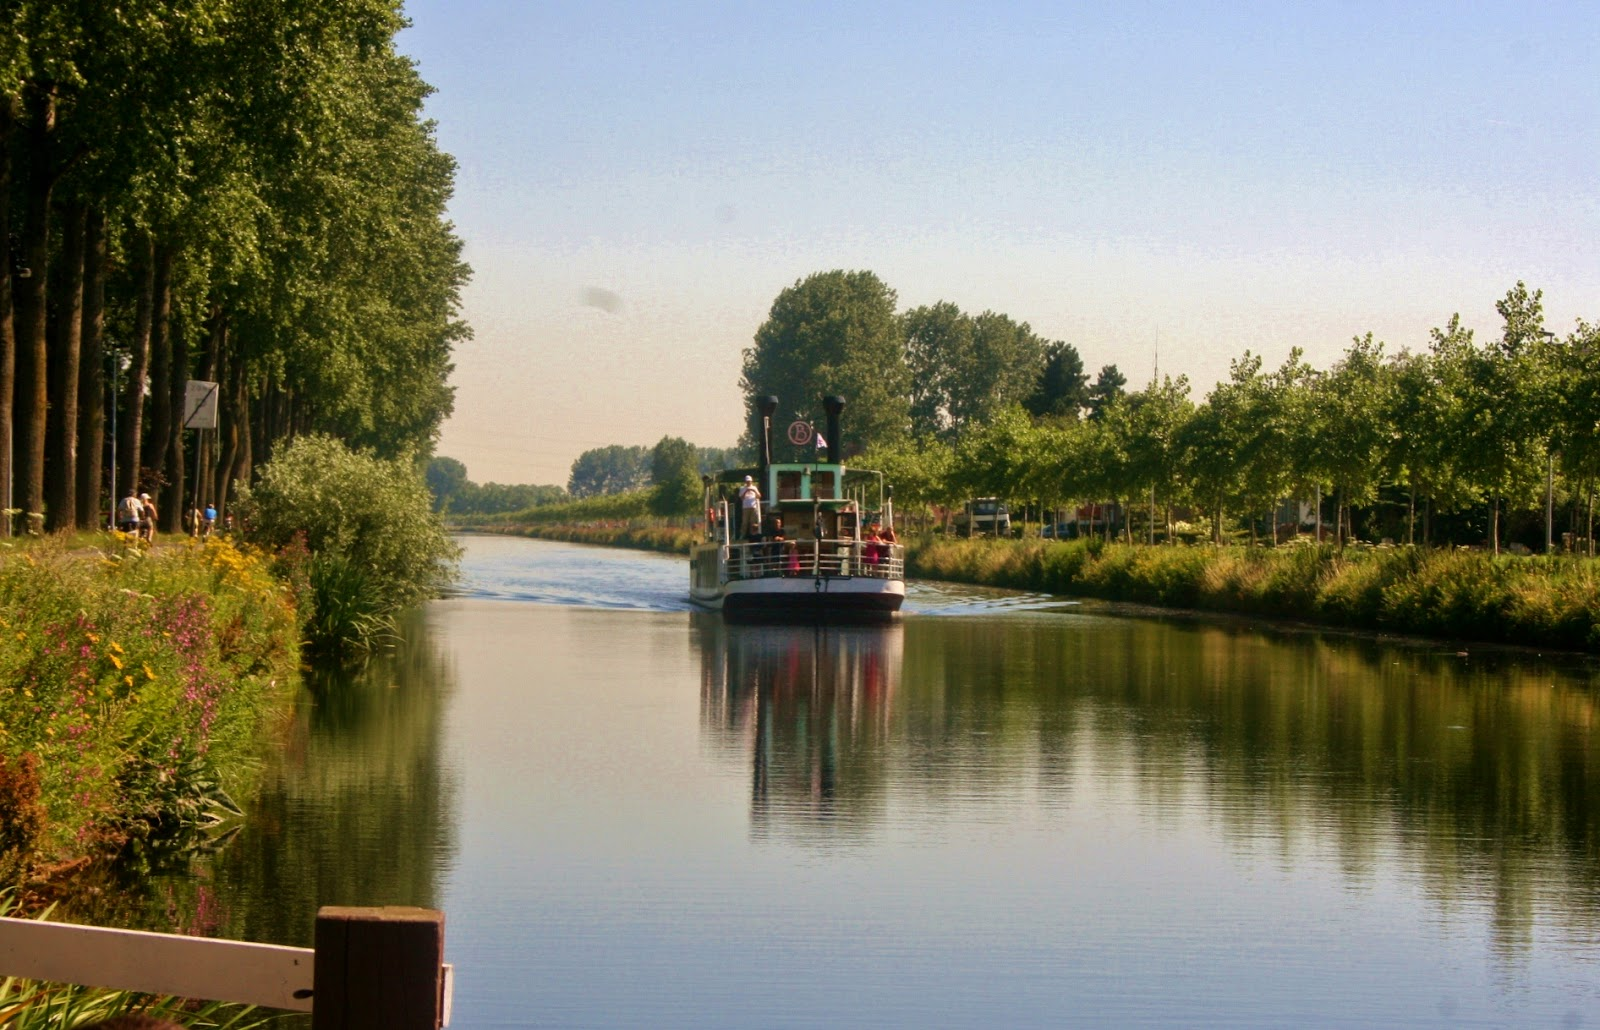 Damme canal boat